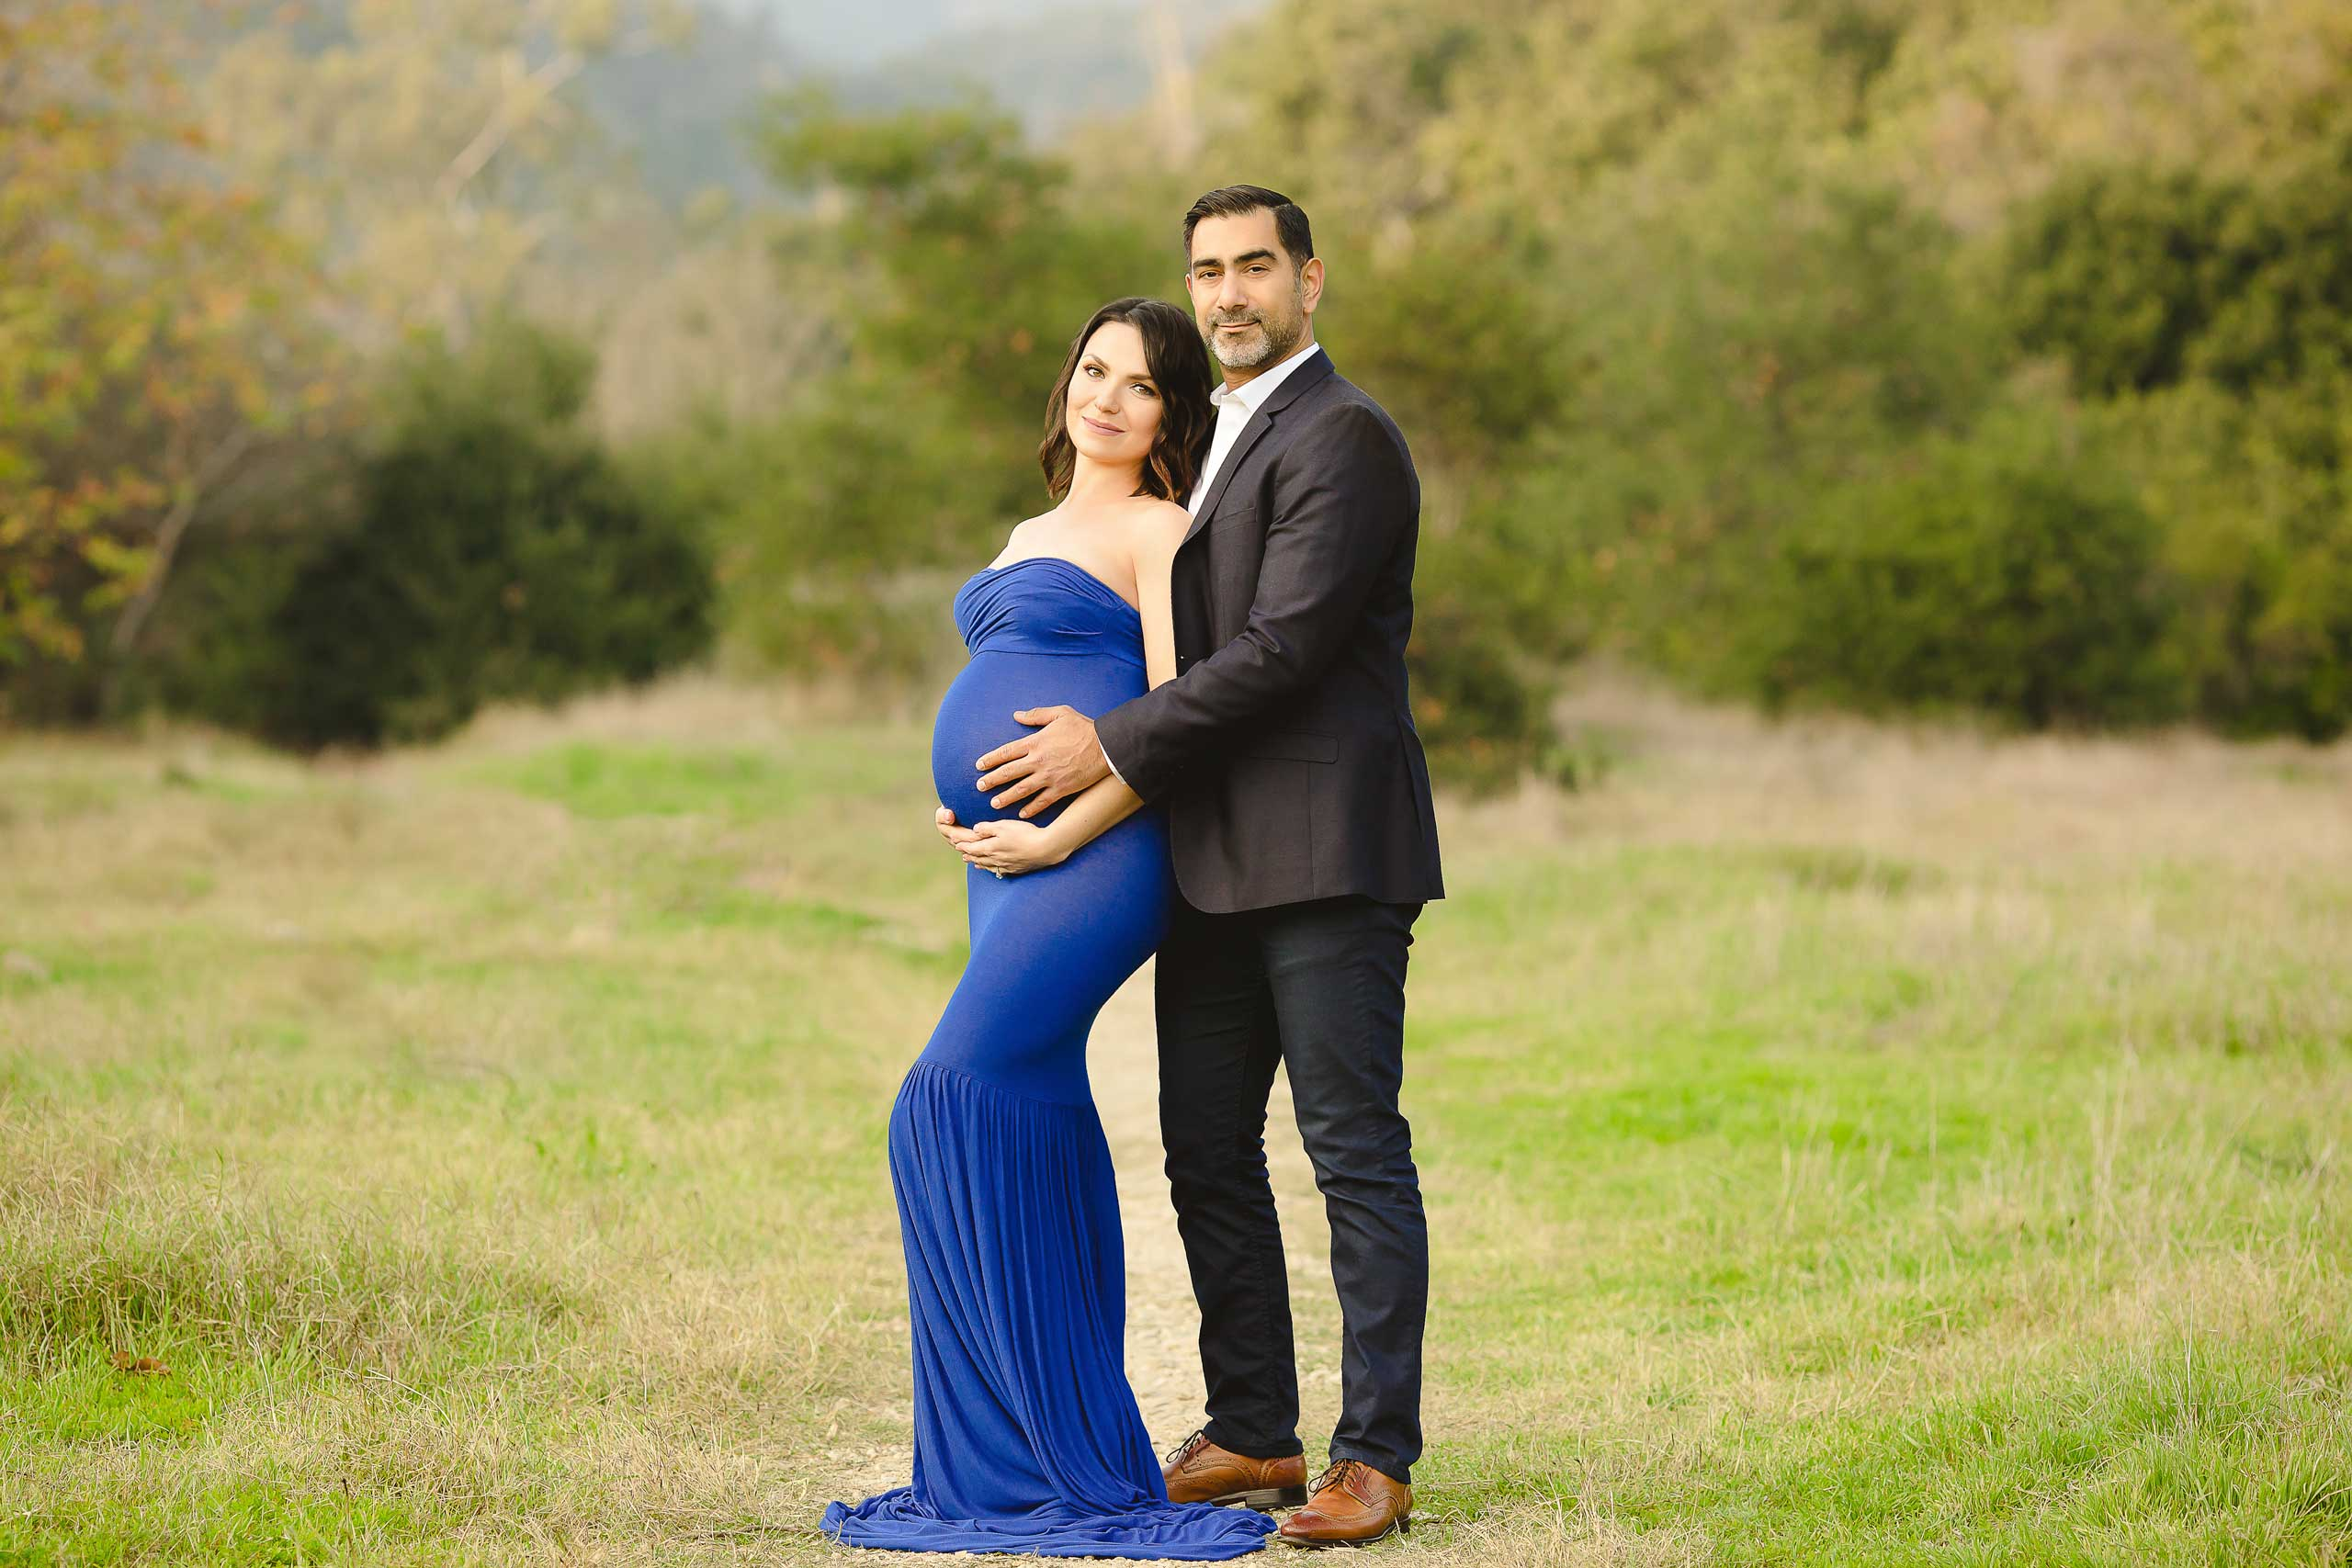 Ramina Magid maternity photography Los Angeles